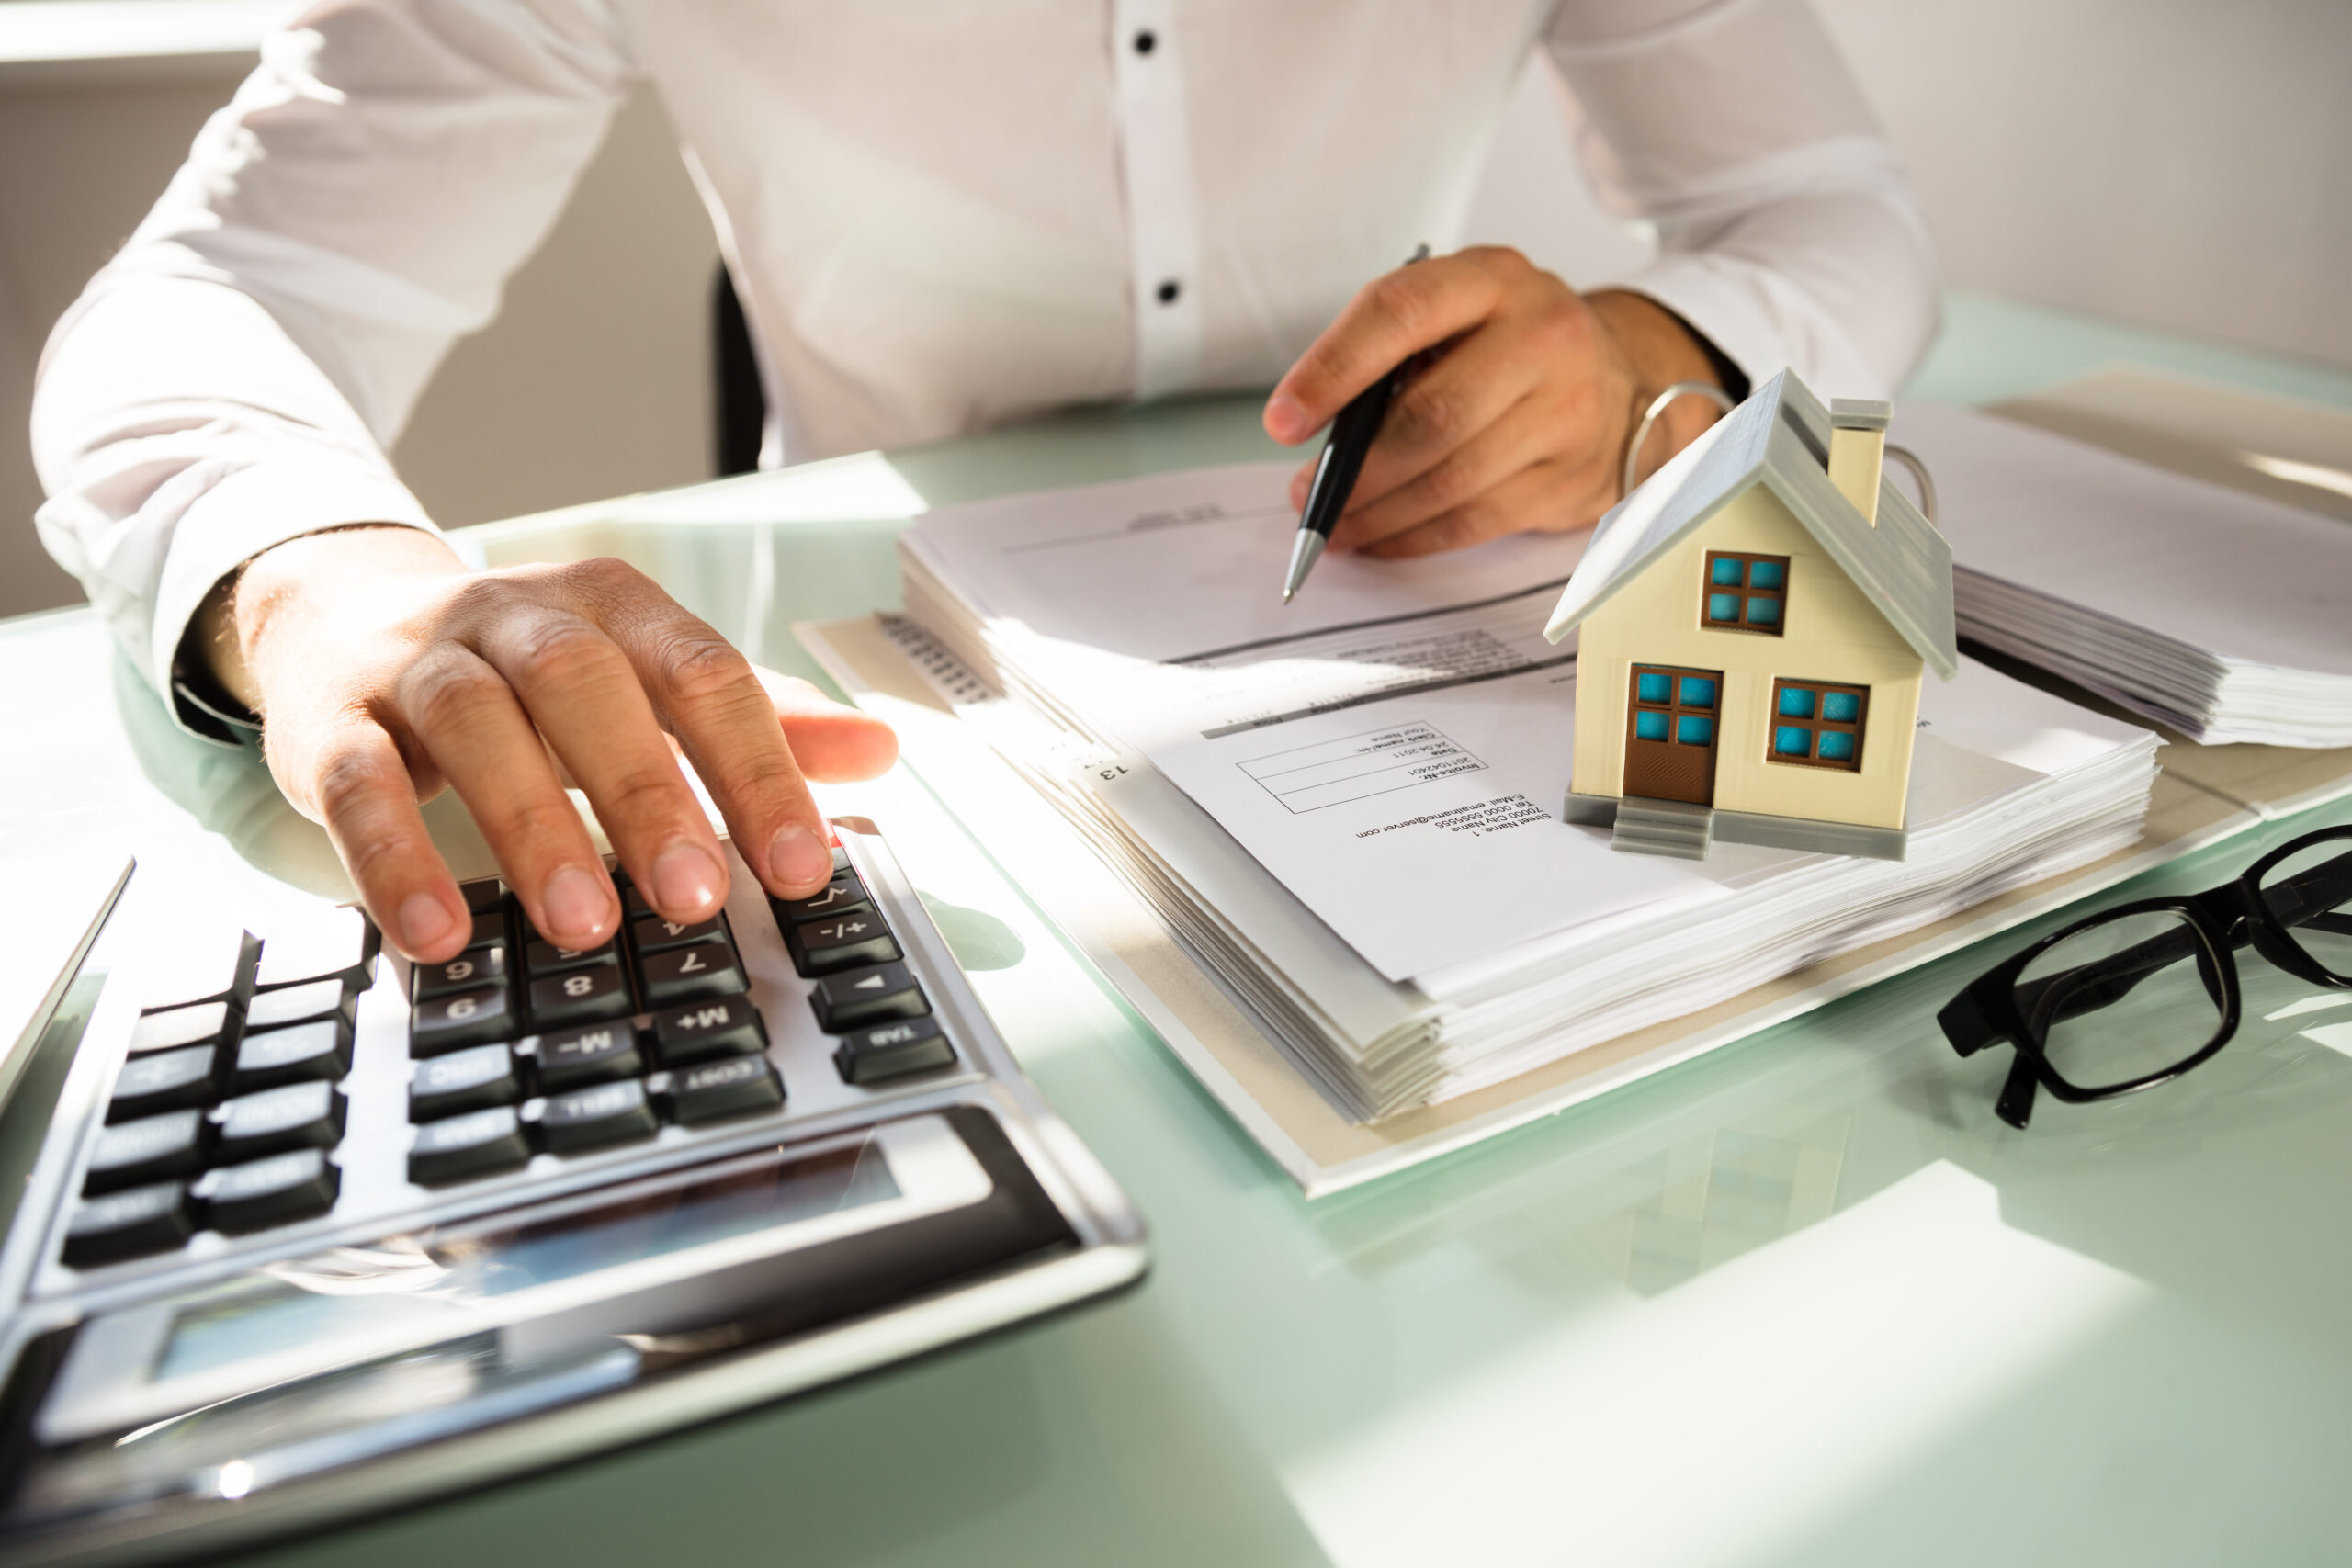 Businessman's,Hand,Calculating,Invoice,With,House,Model,In,Office